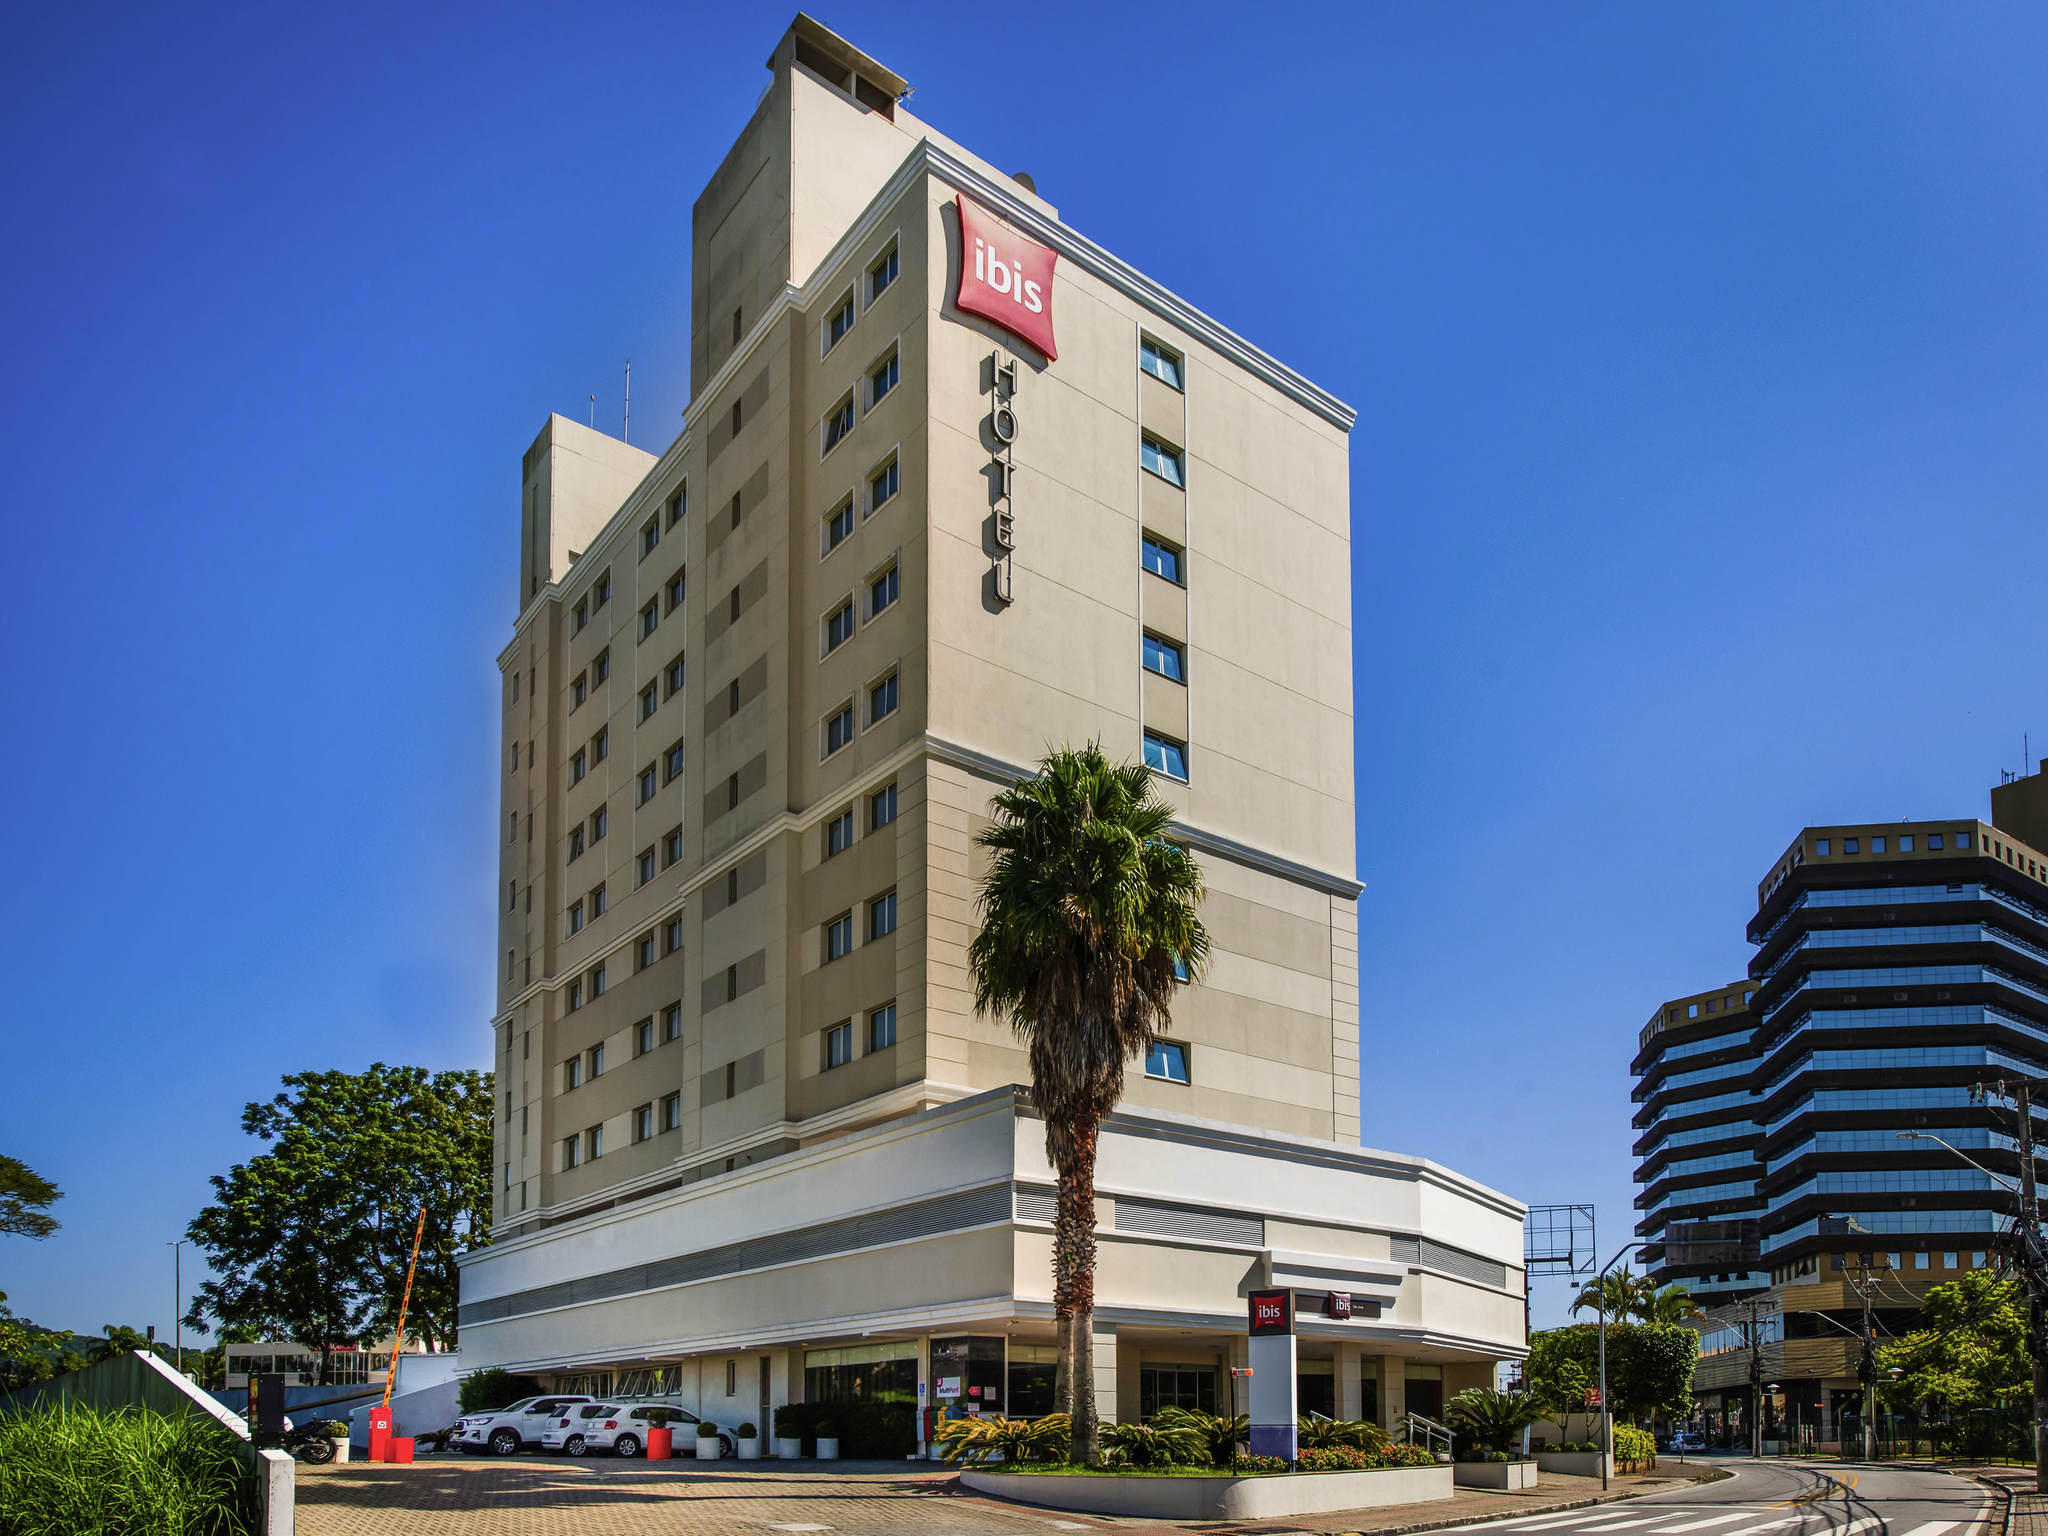 ibis são josé book your bud hotel on the official web site